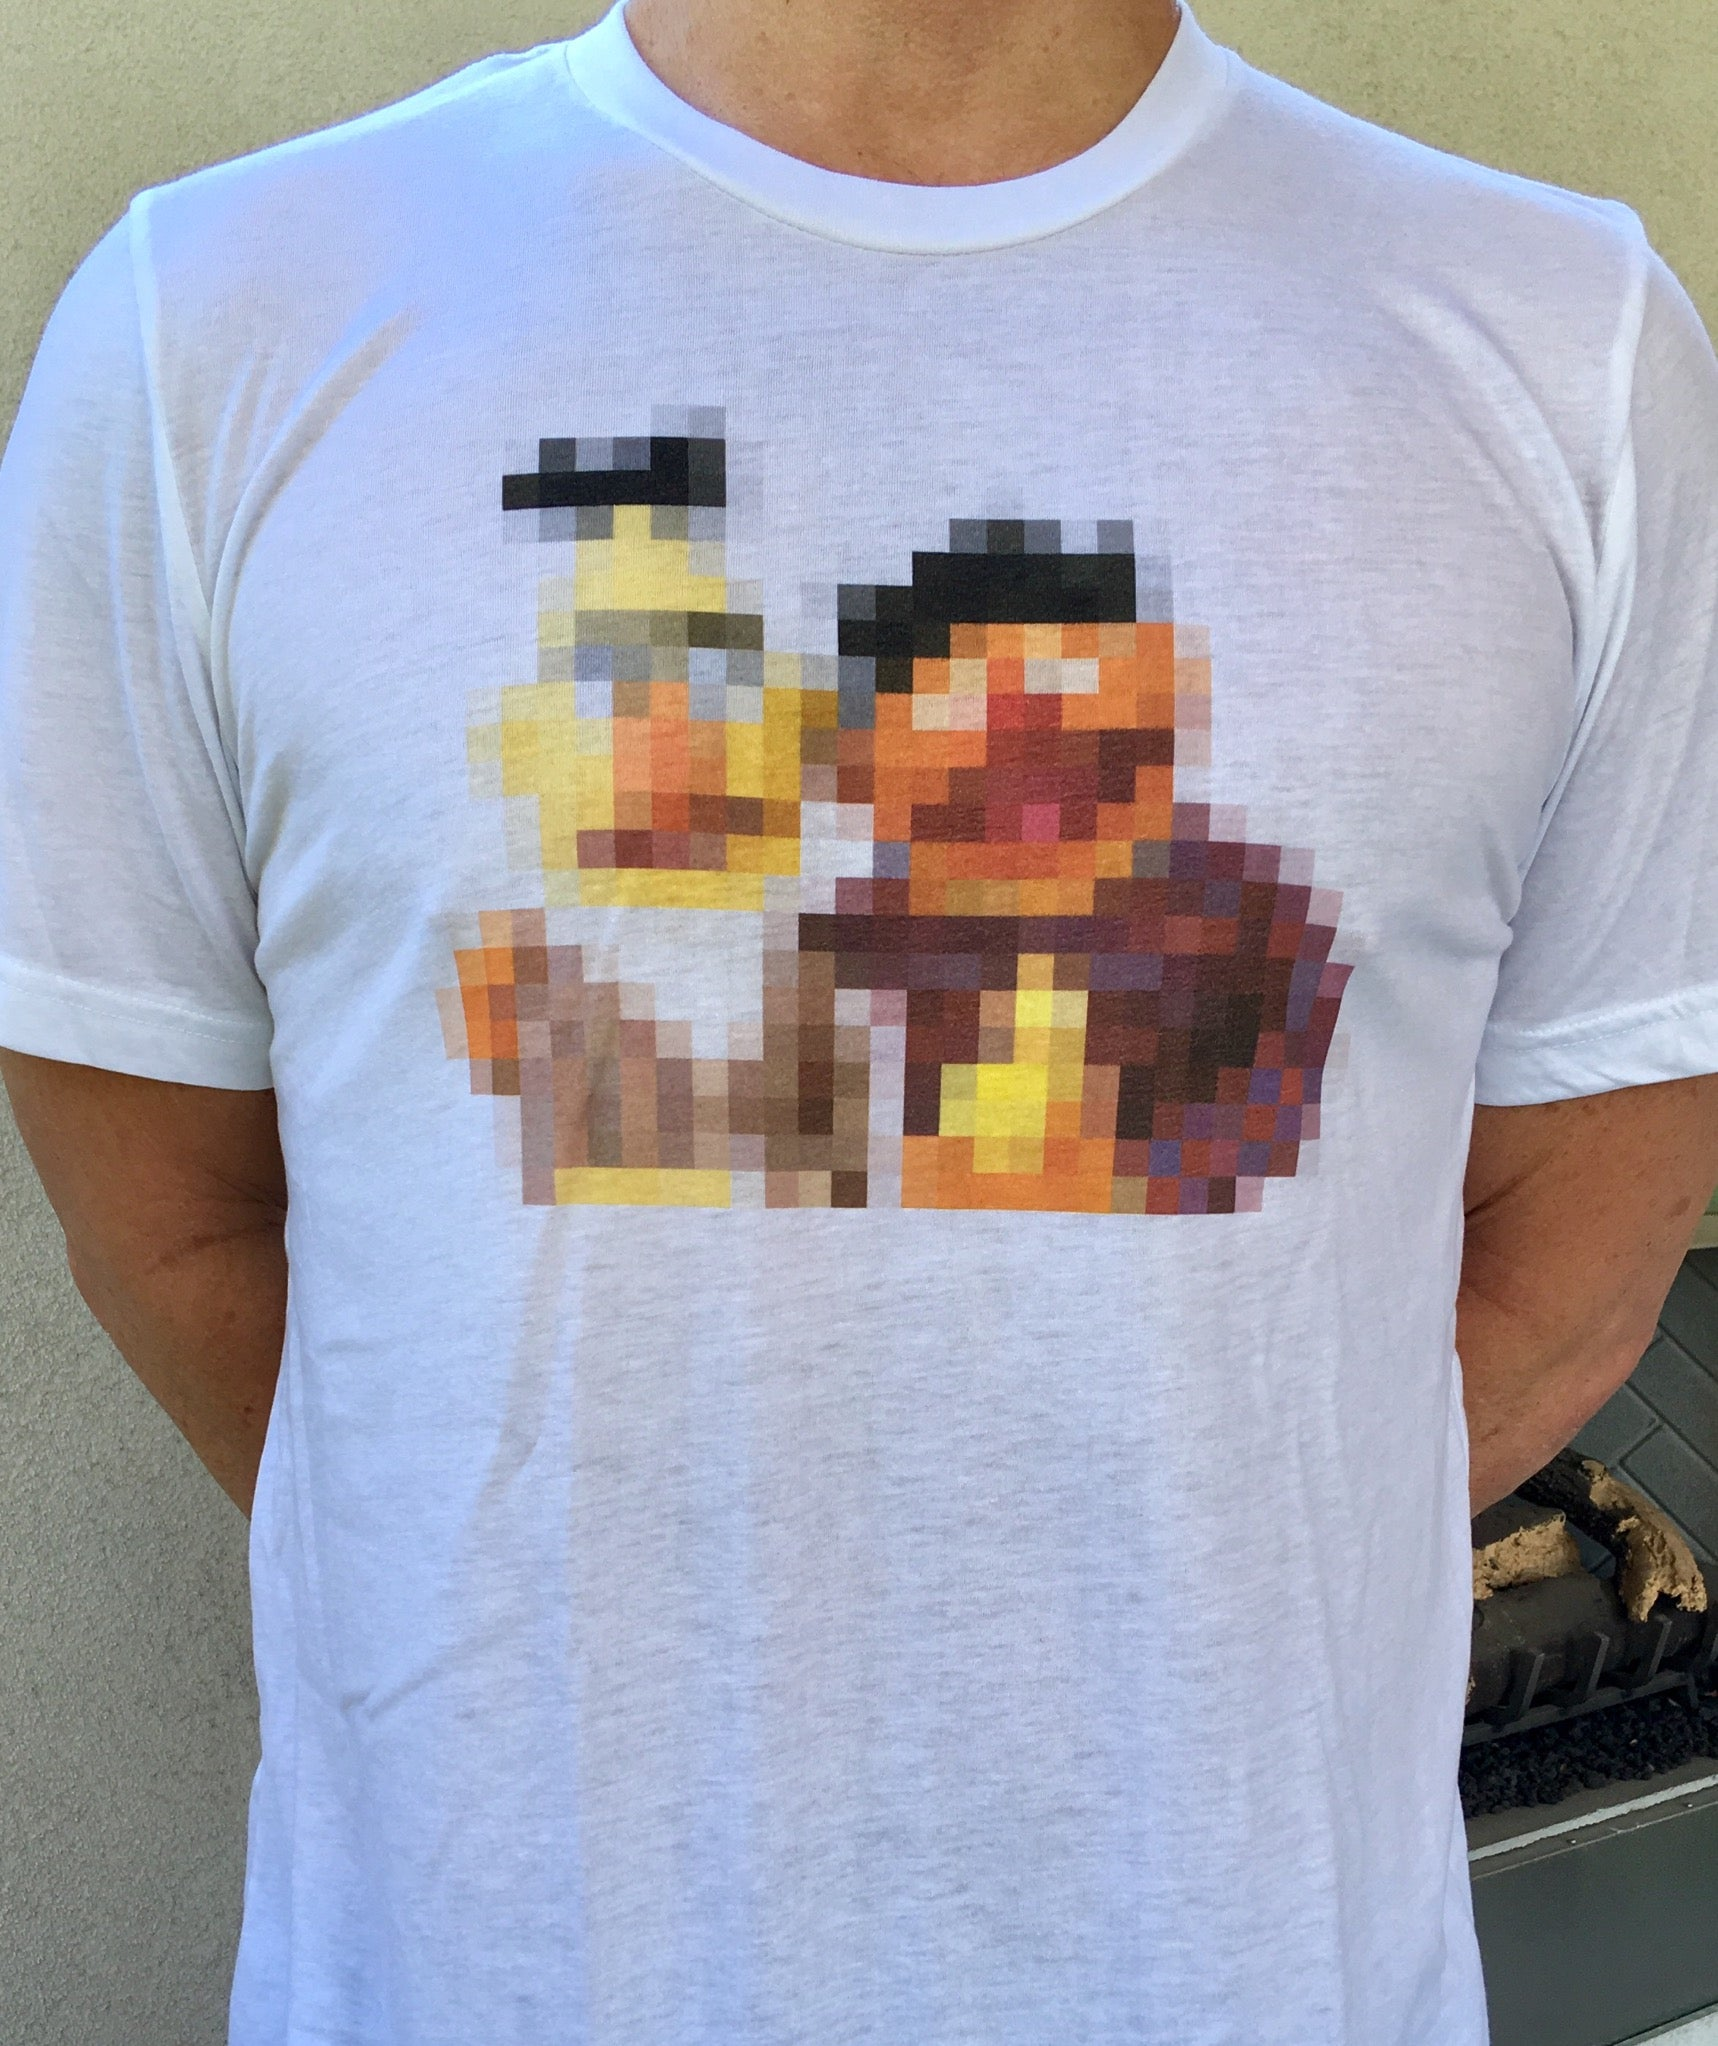 Pixelated Bert and Ernie T-Shirt - Tractor Beam Apparel